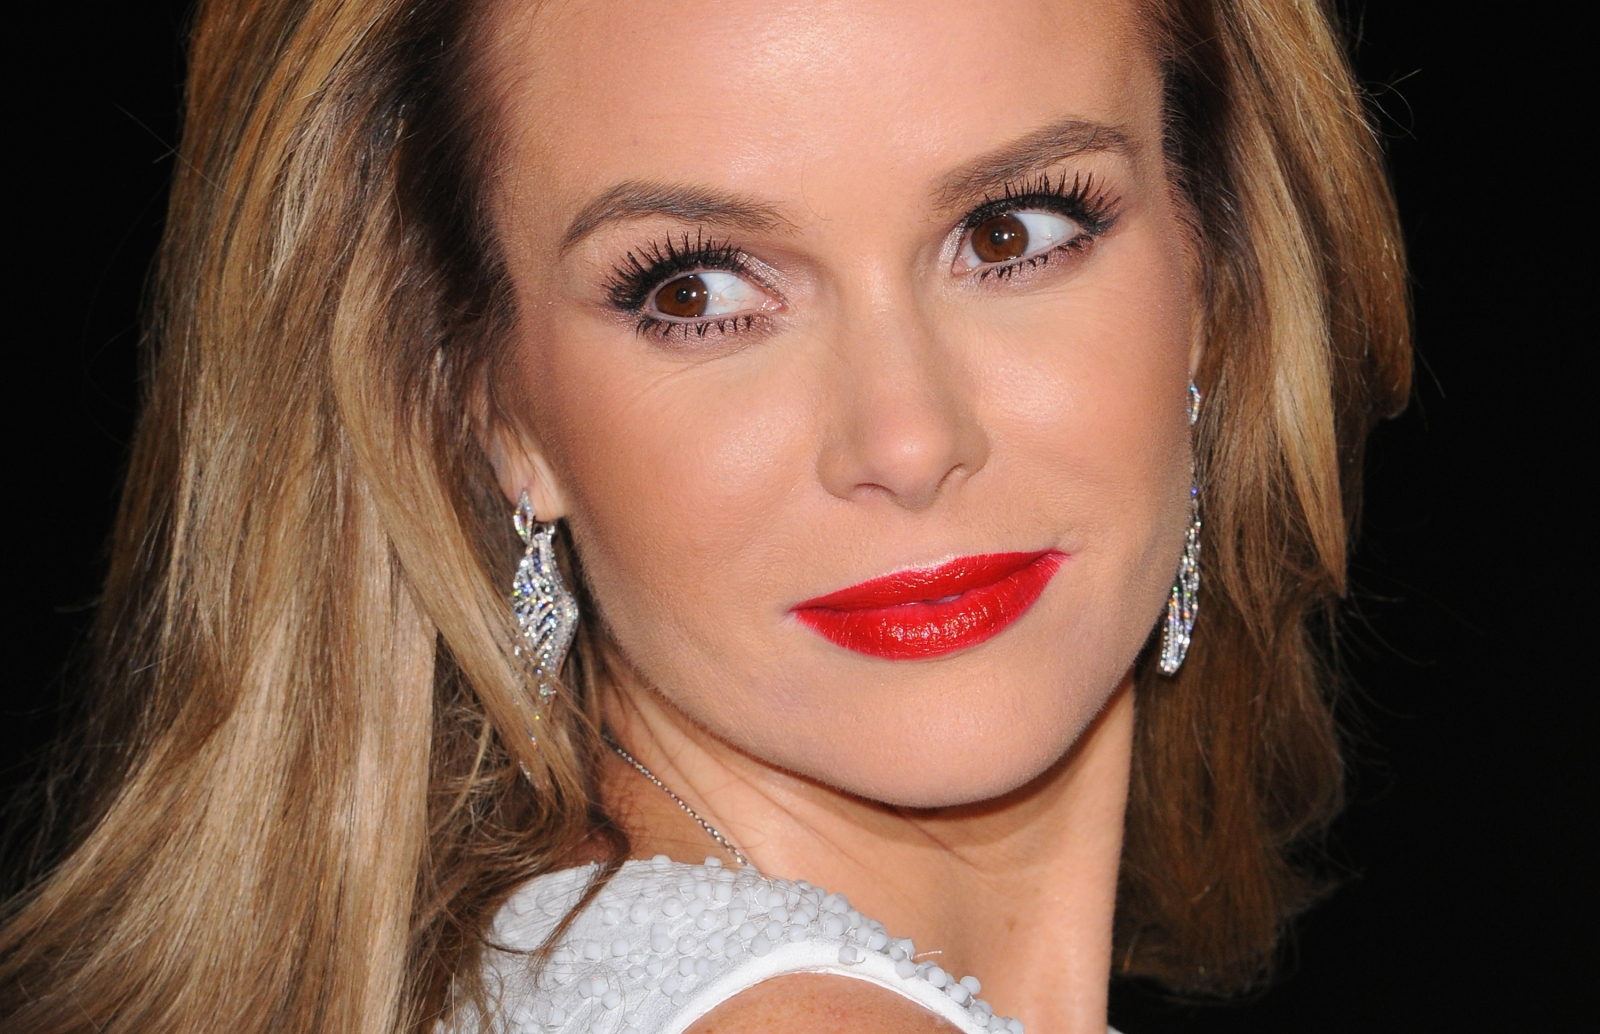 Britain's Got Talent judge Amanda Holden's sister in car crash